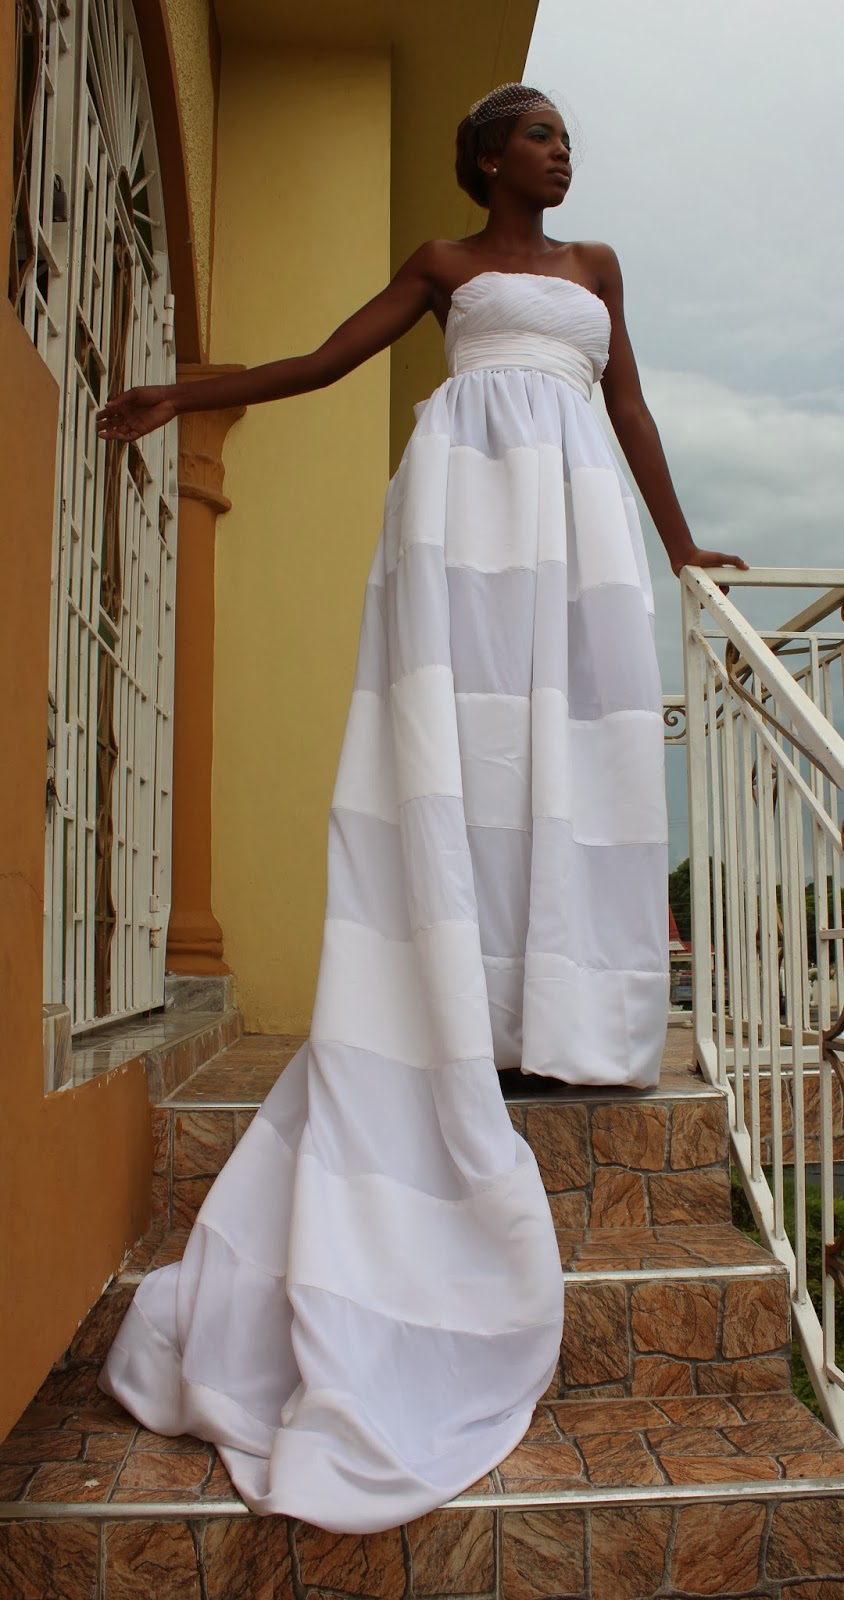 Wedding Dress For   In Jamaica : Less in jamaica tying the knot wedding dresses by clay